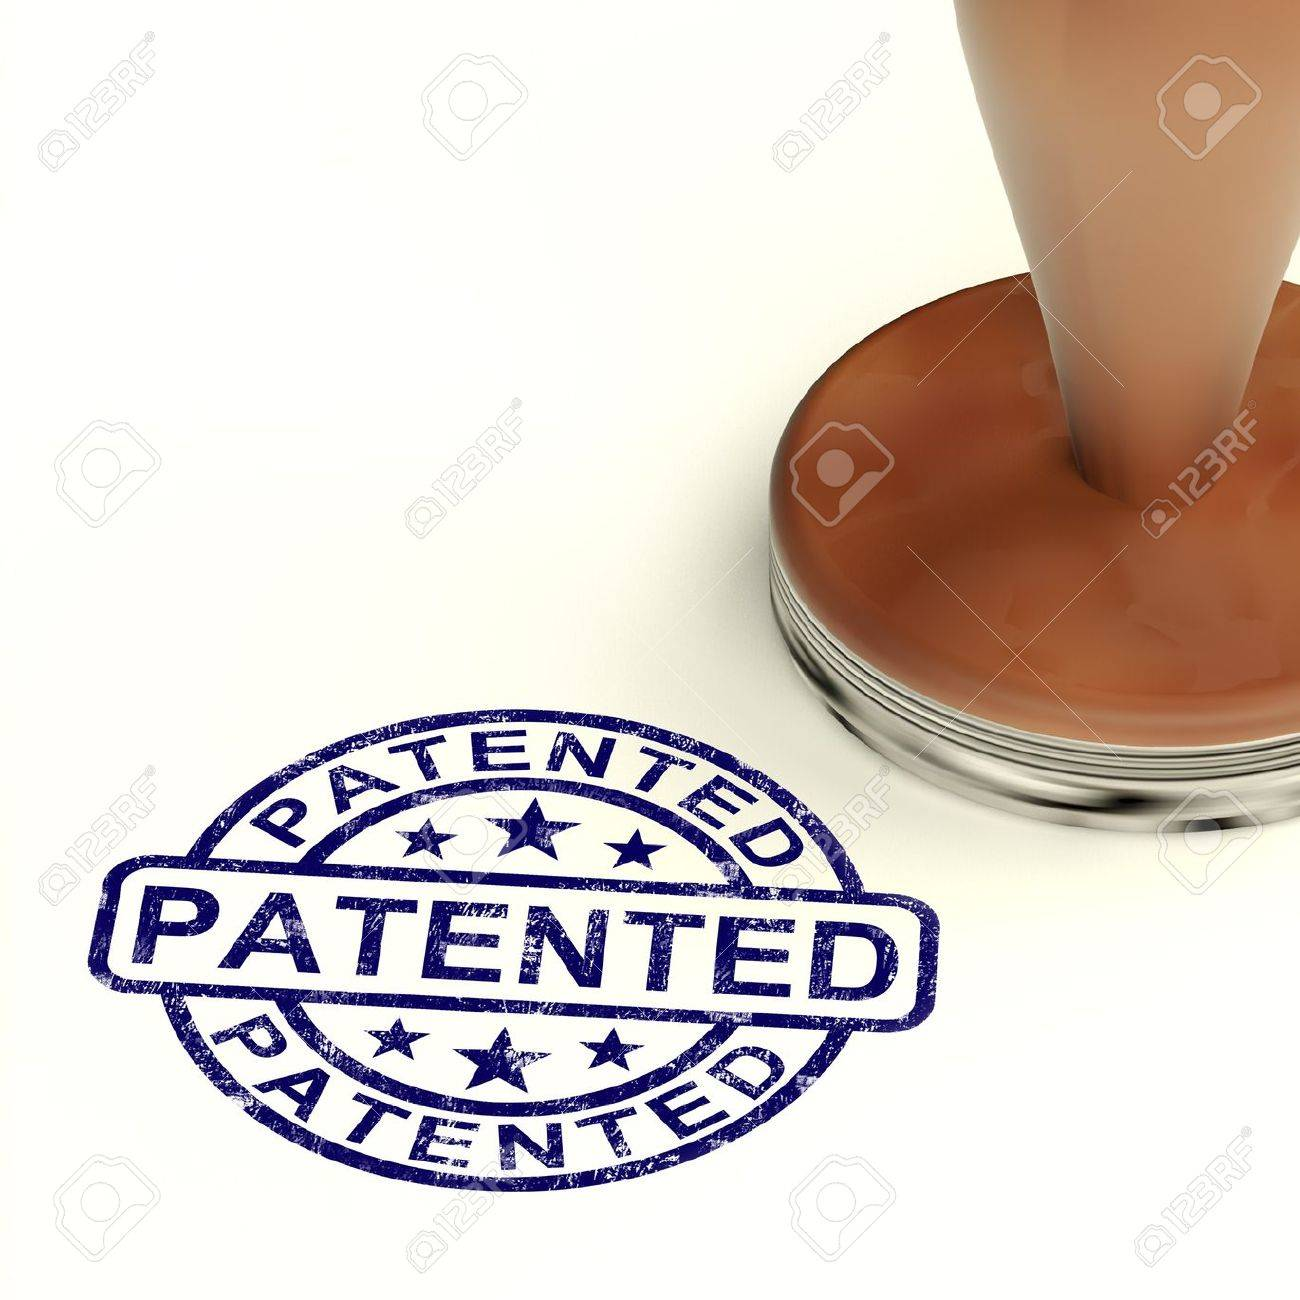 Patented Stamp Showing Registered Patent Or Trademark Stock Photo - 13965420